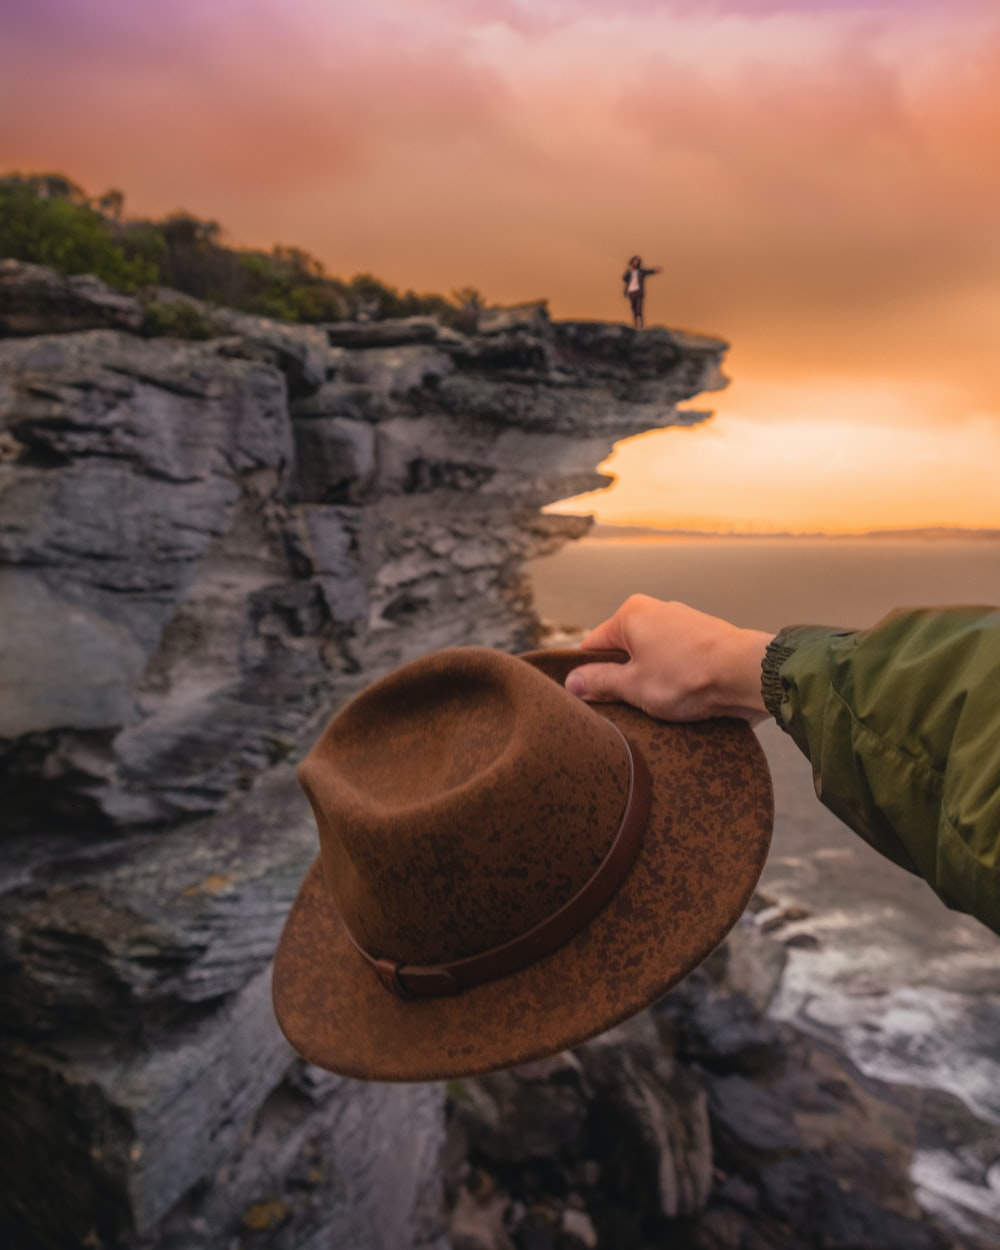 man about to throw his hat at the sea in front of man waving at the edge of the cliff